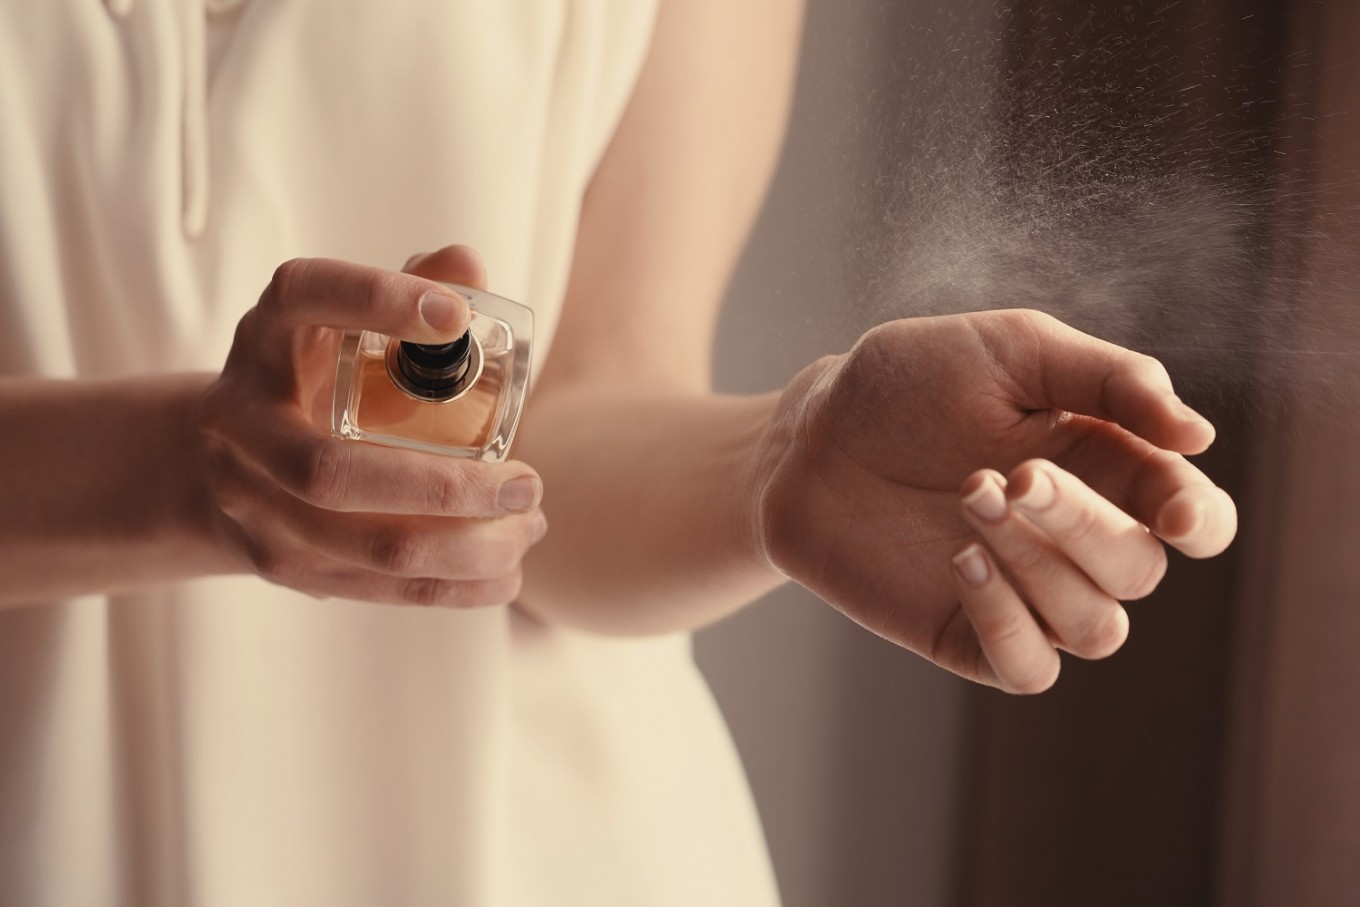 Gross ingredient helps perfumes smell good